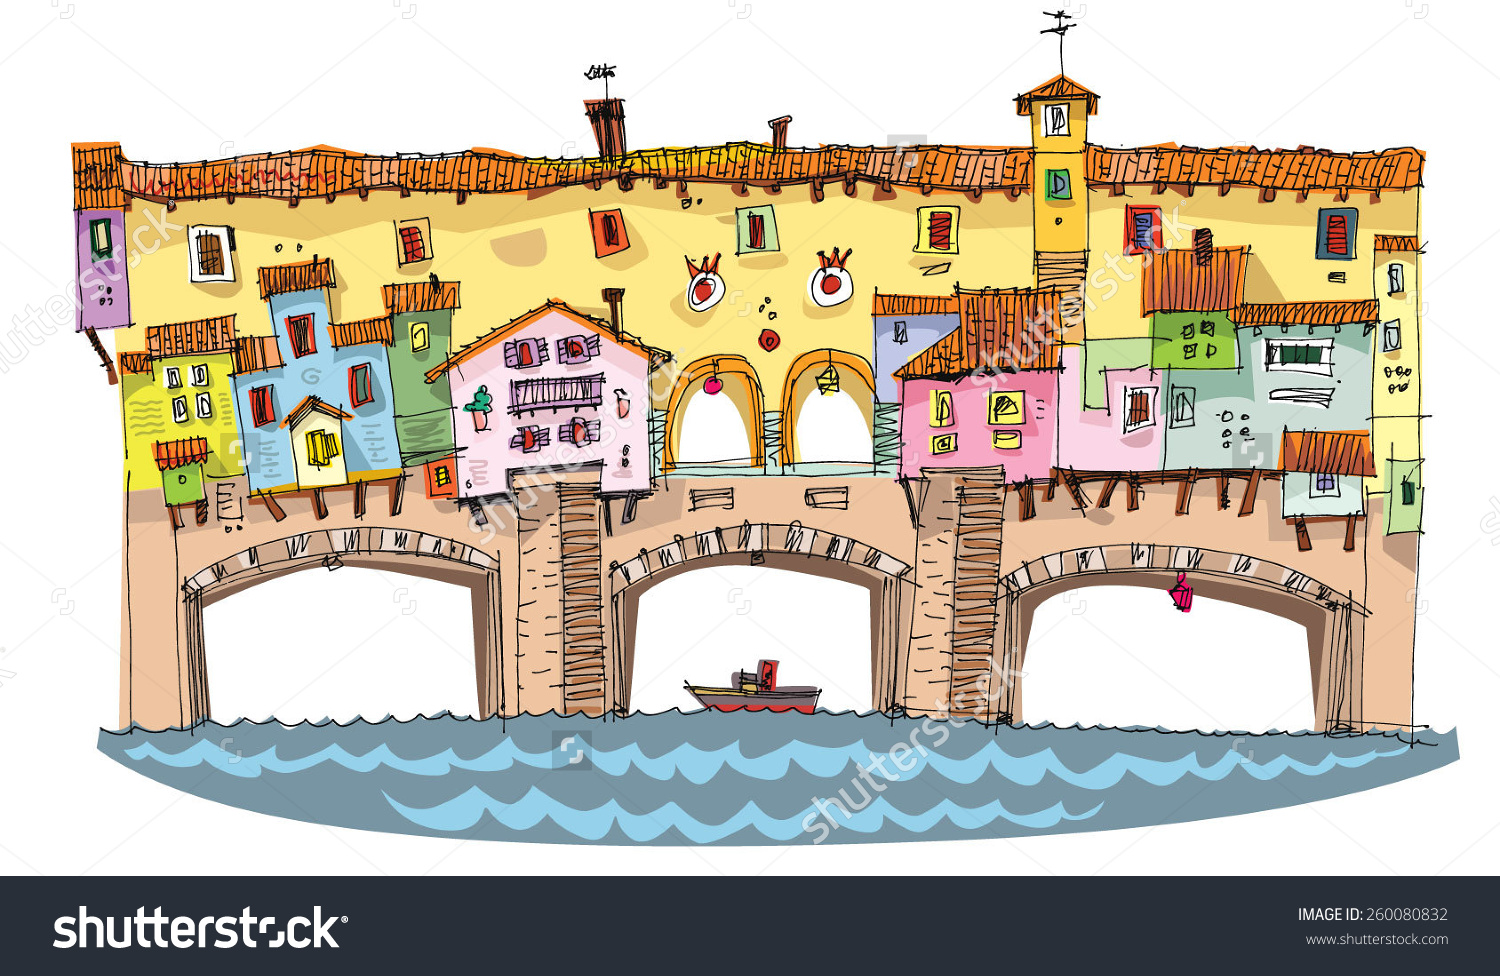 Medieval Bridge With Buildings On It.